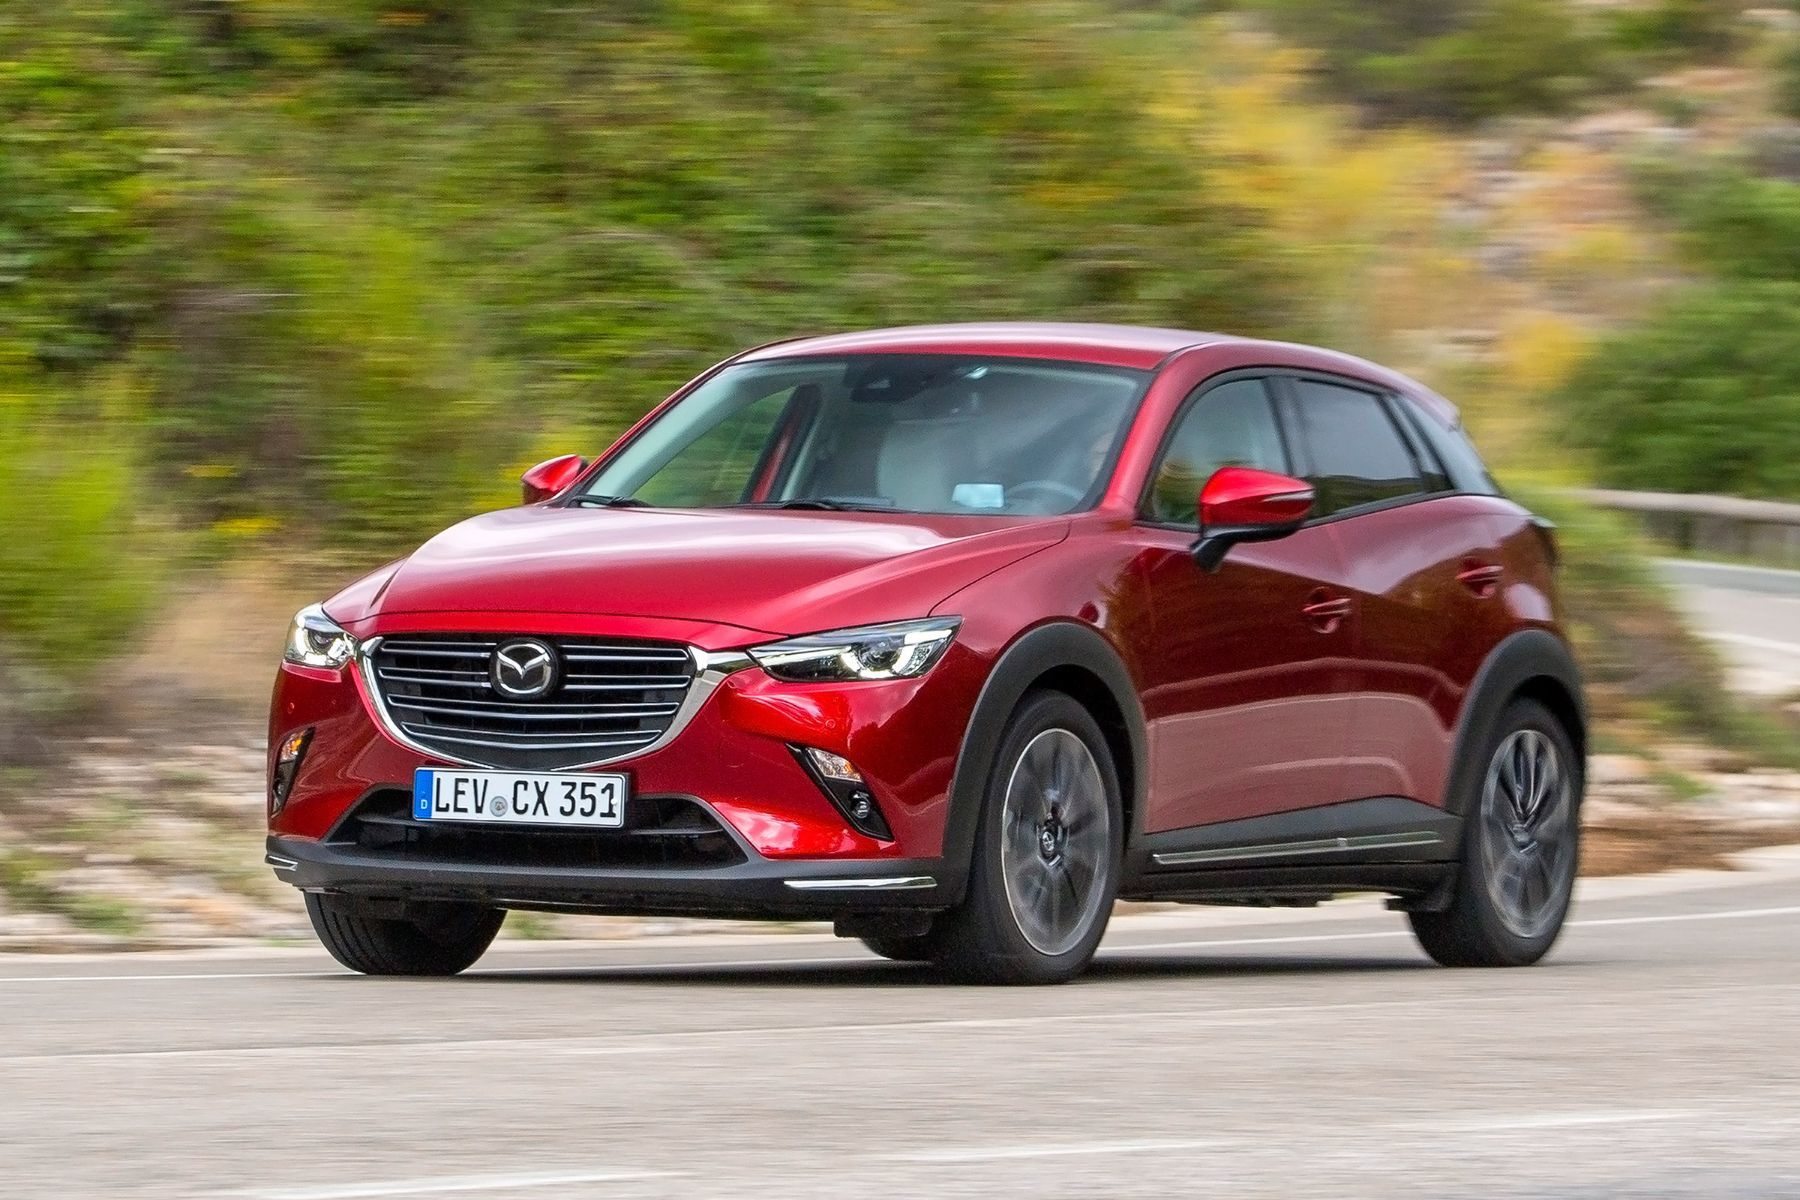 2019 Mazda CX-3 - red model driving